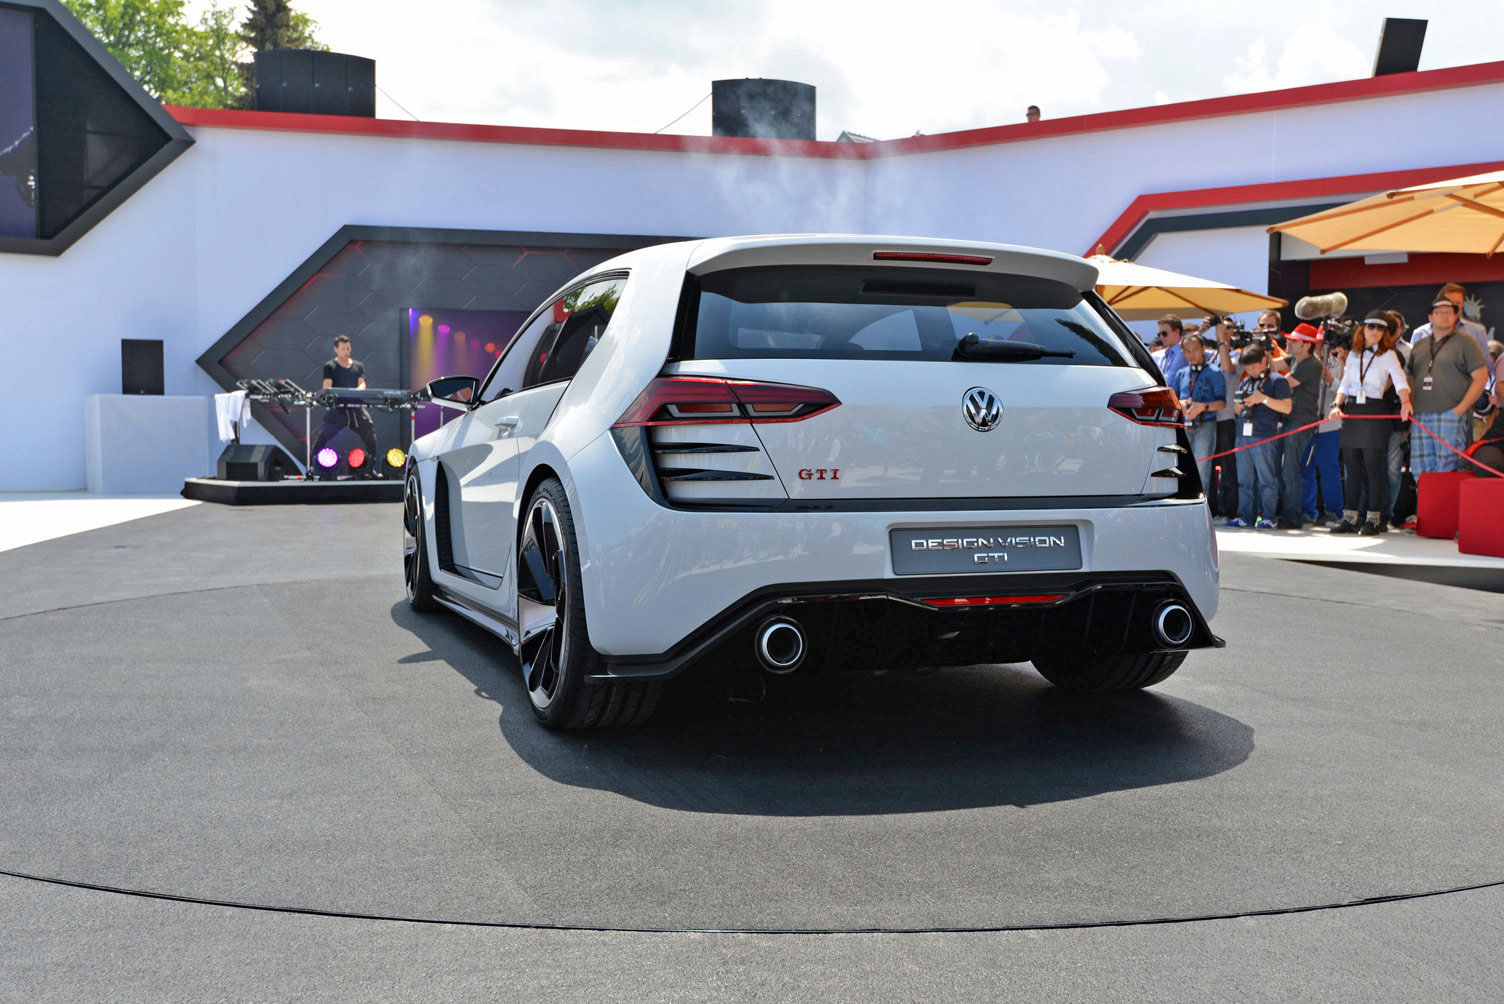 volkswagen-design-vision-gti-worthersee-023